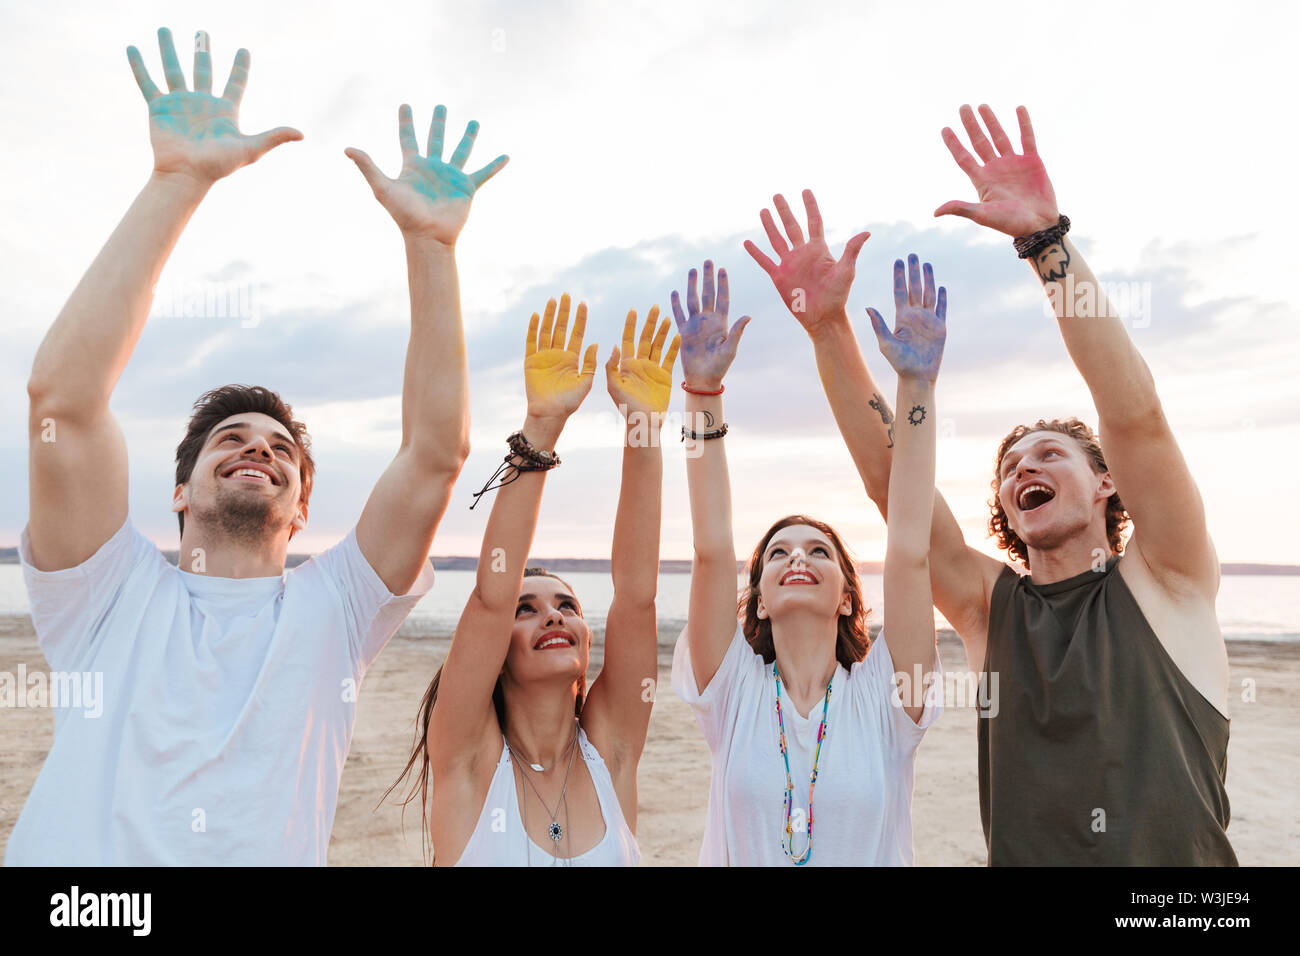 Group of a cheerful young friends having fun at the beach with colorful holi paint, showing hands - Stock Image